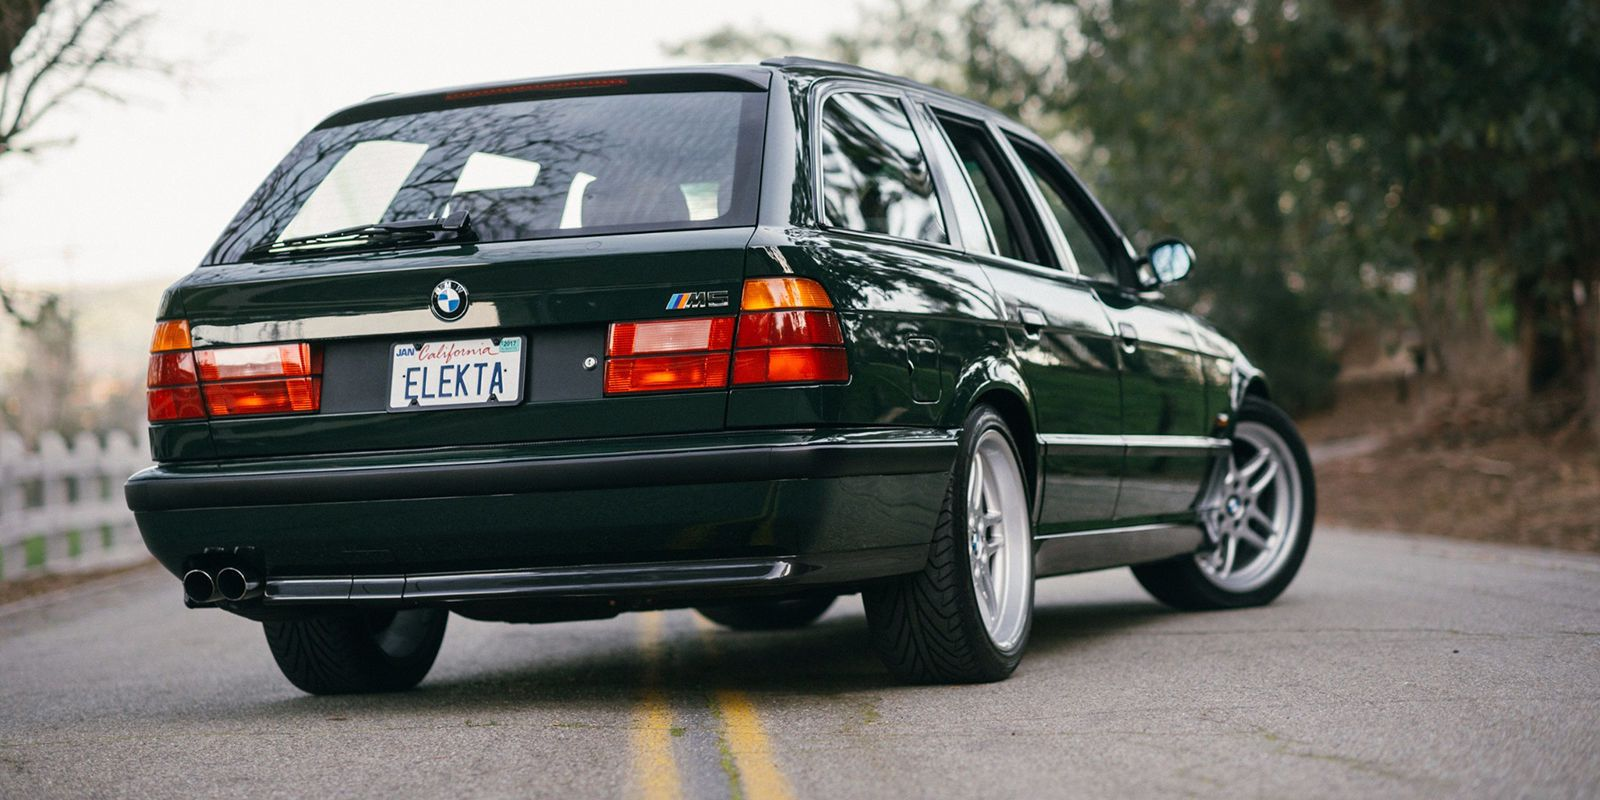 This Amazing Bmw M5 Wagon Just Sold For 120 000 Bmw M5 Touring